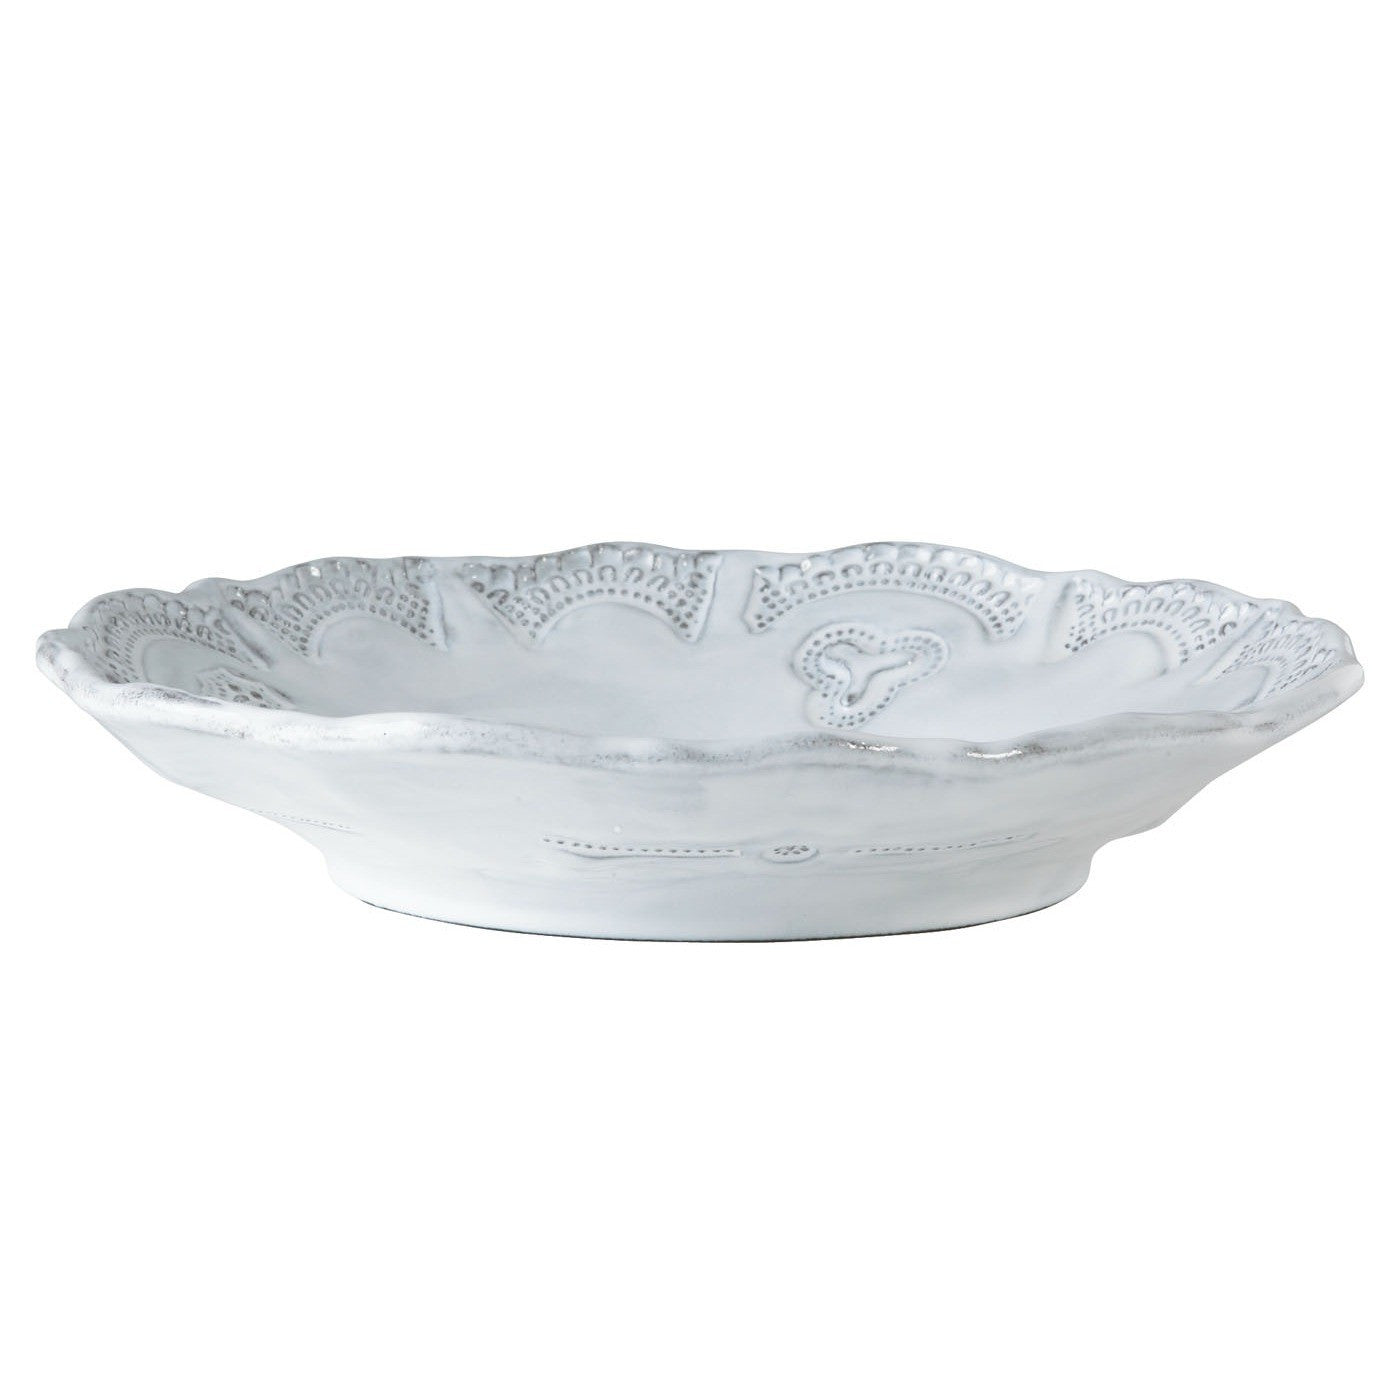 Incanto Lace Pasta Bowl - Set of 4 , tableware - Vietri, Pezzo Bello